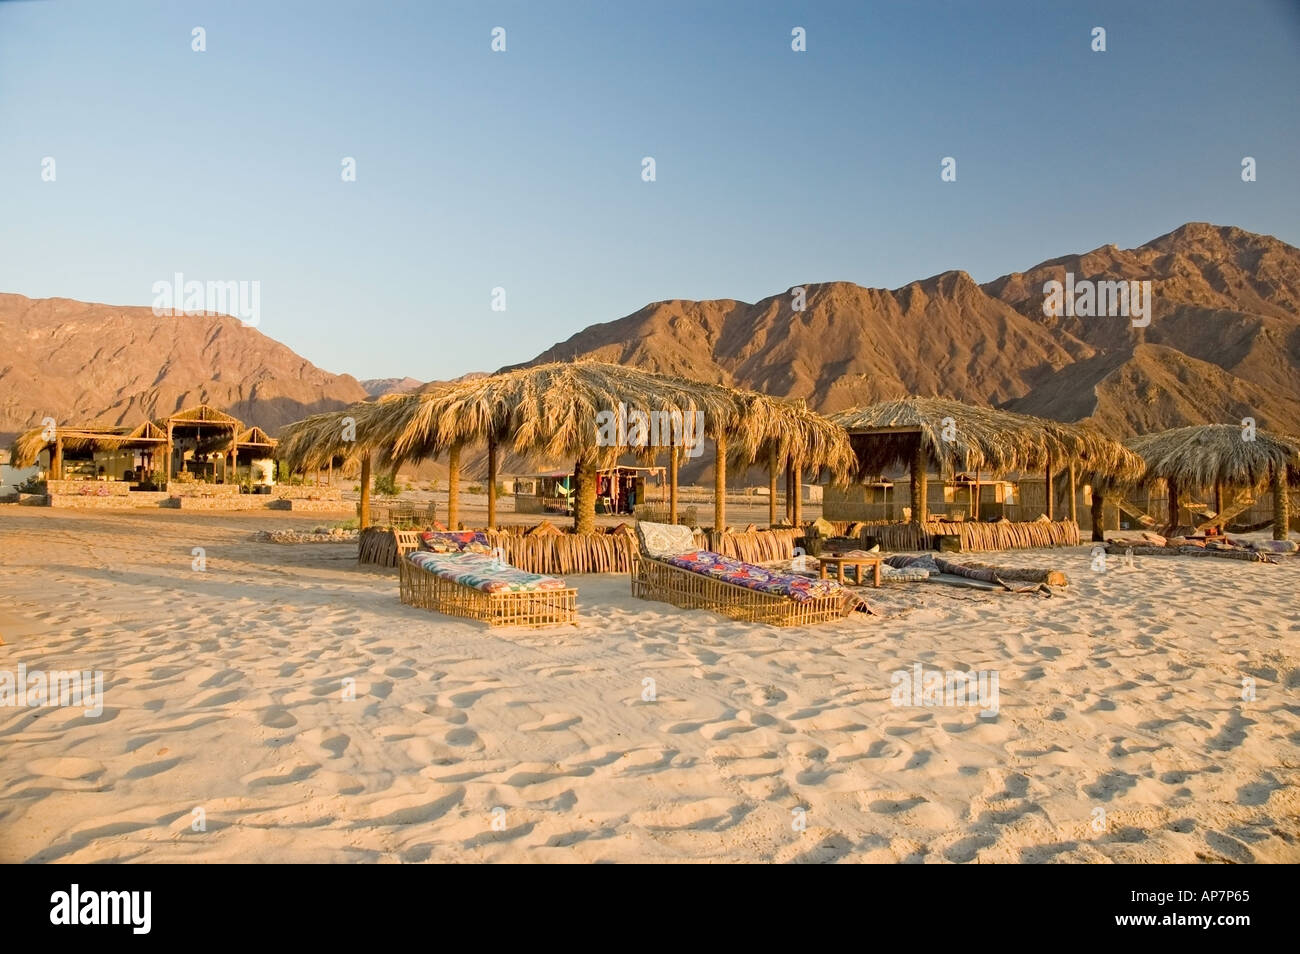 Cheap accomodation on the beach between Nuweiba and Taba, Gulf of Aqaba, Red Sea. DSC_4779 - Stock Image